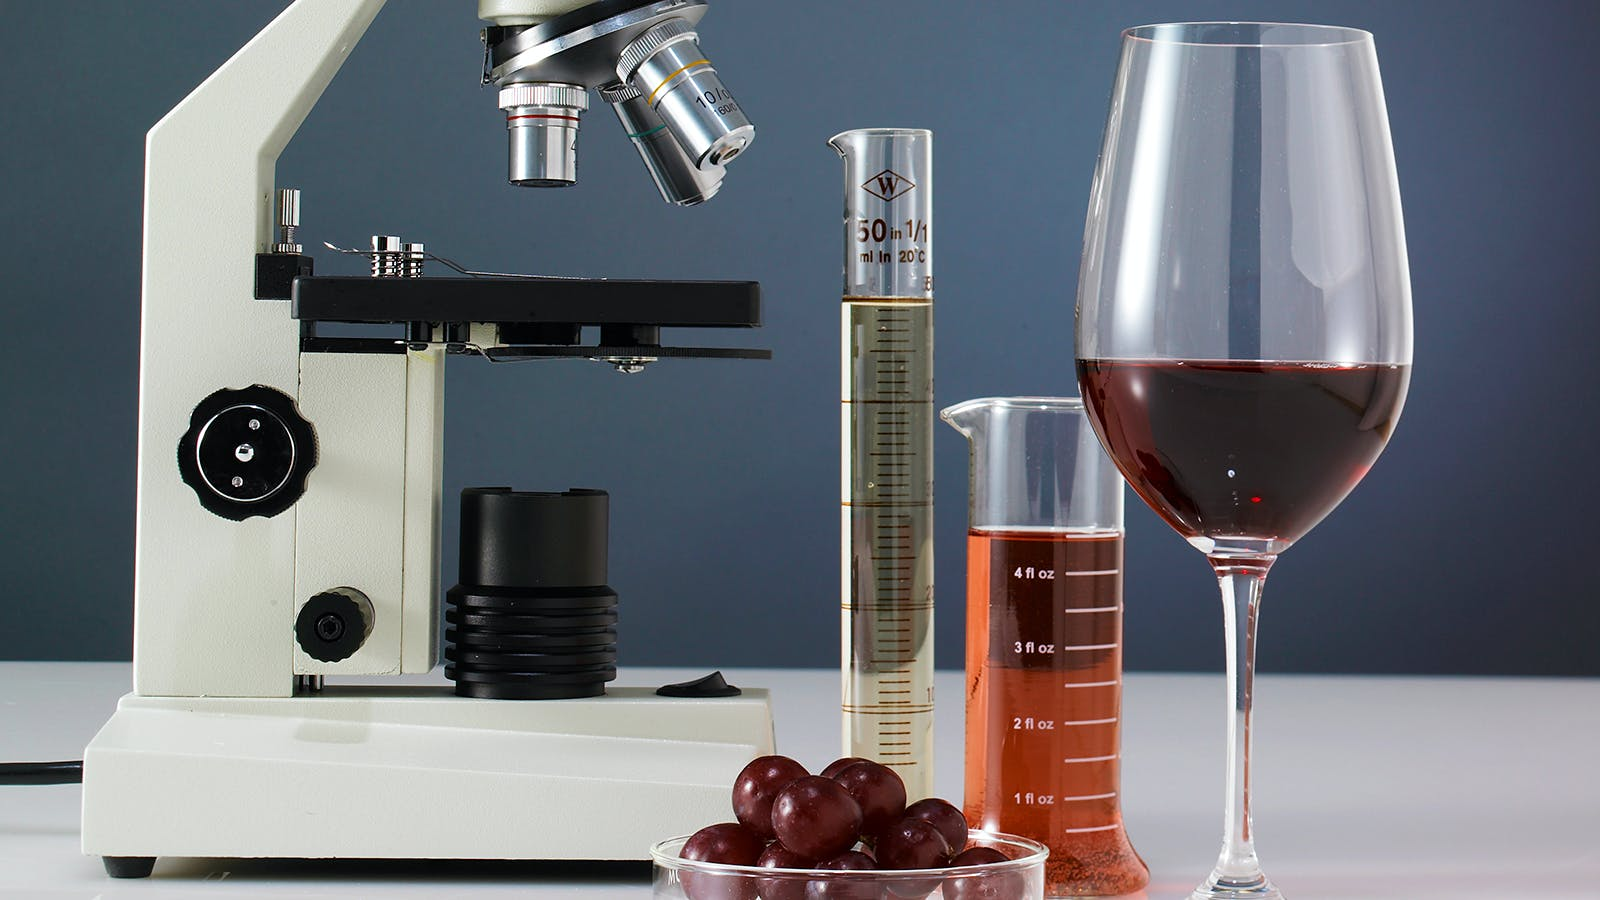 Scientists Find Promise Treating Alzheimer's with a Mix of Wine Compounds